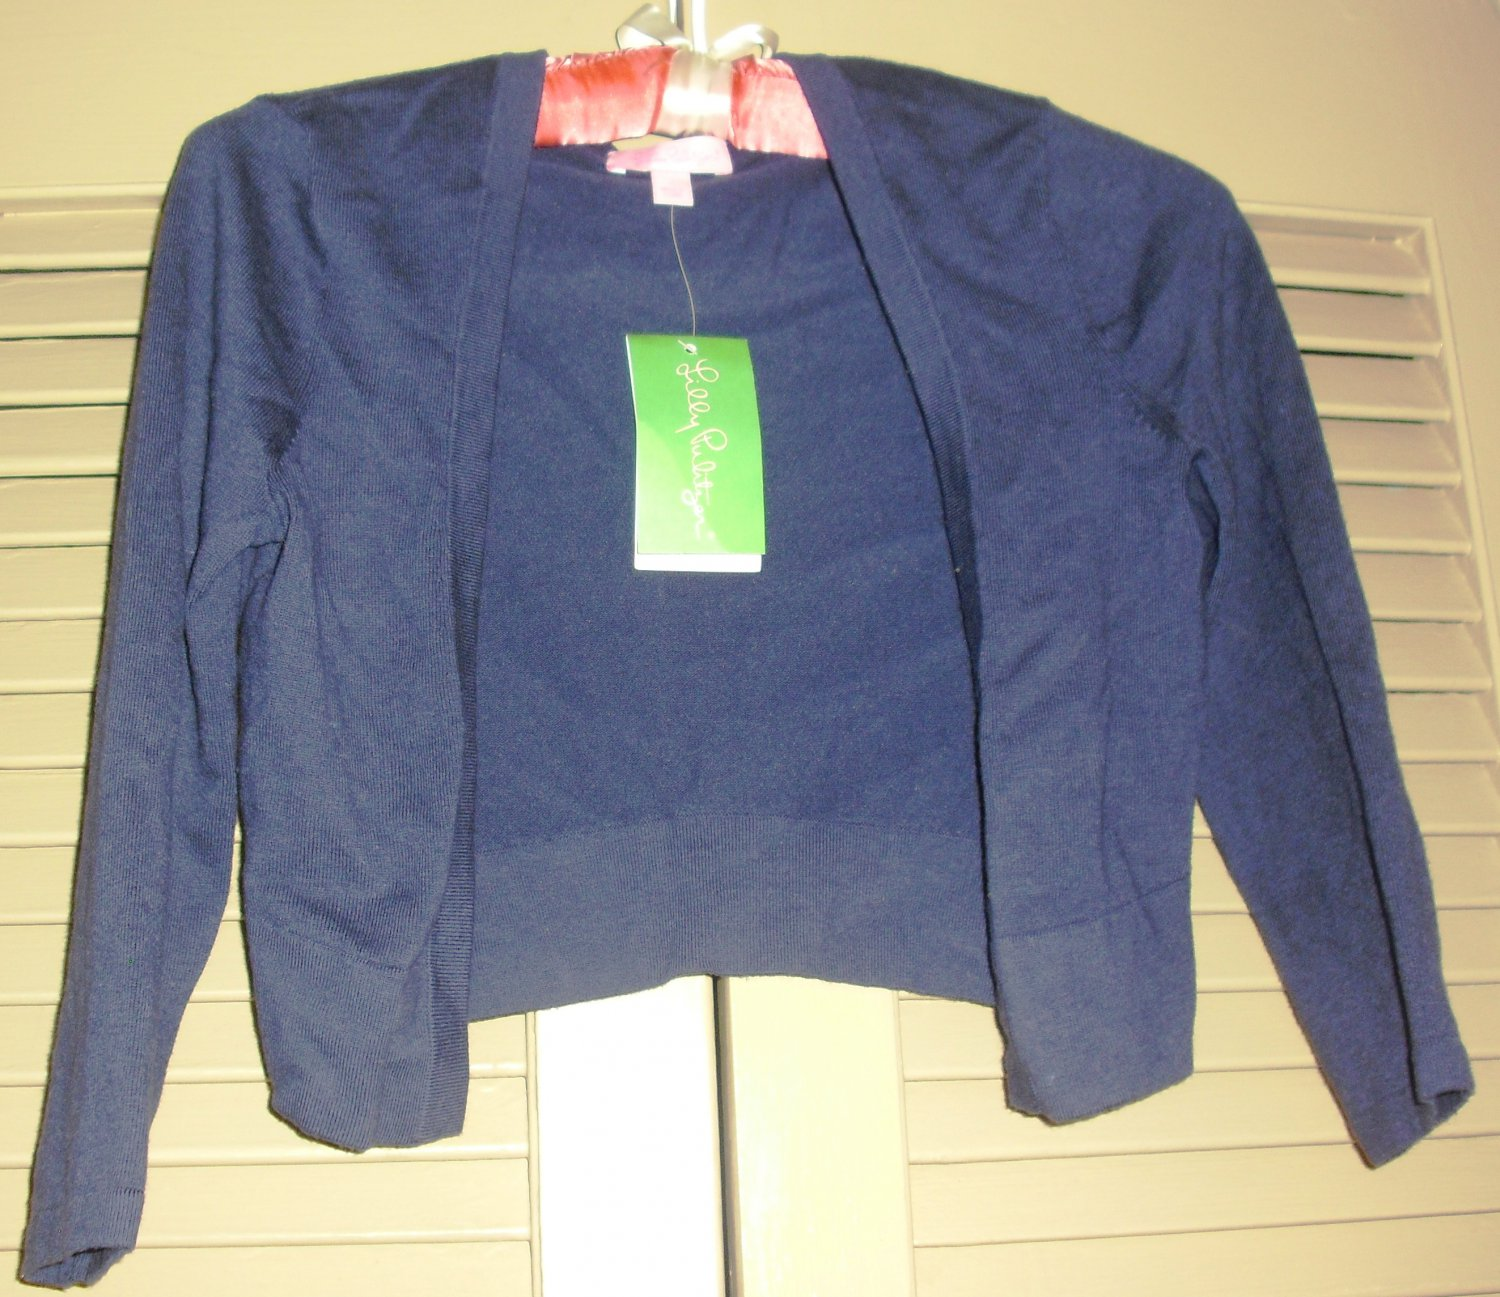 Brand new! Lilly Pulitzer Girls Navy Blue Danielle Cardigan size S